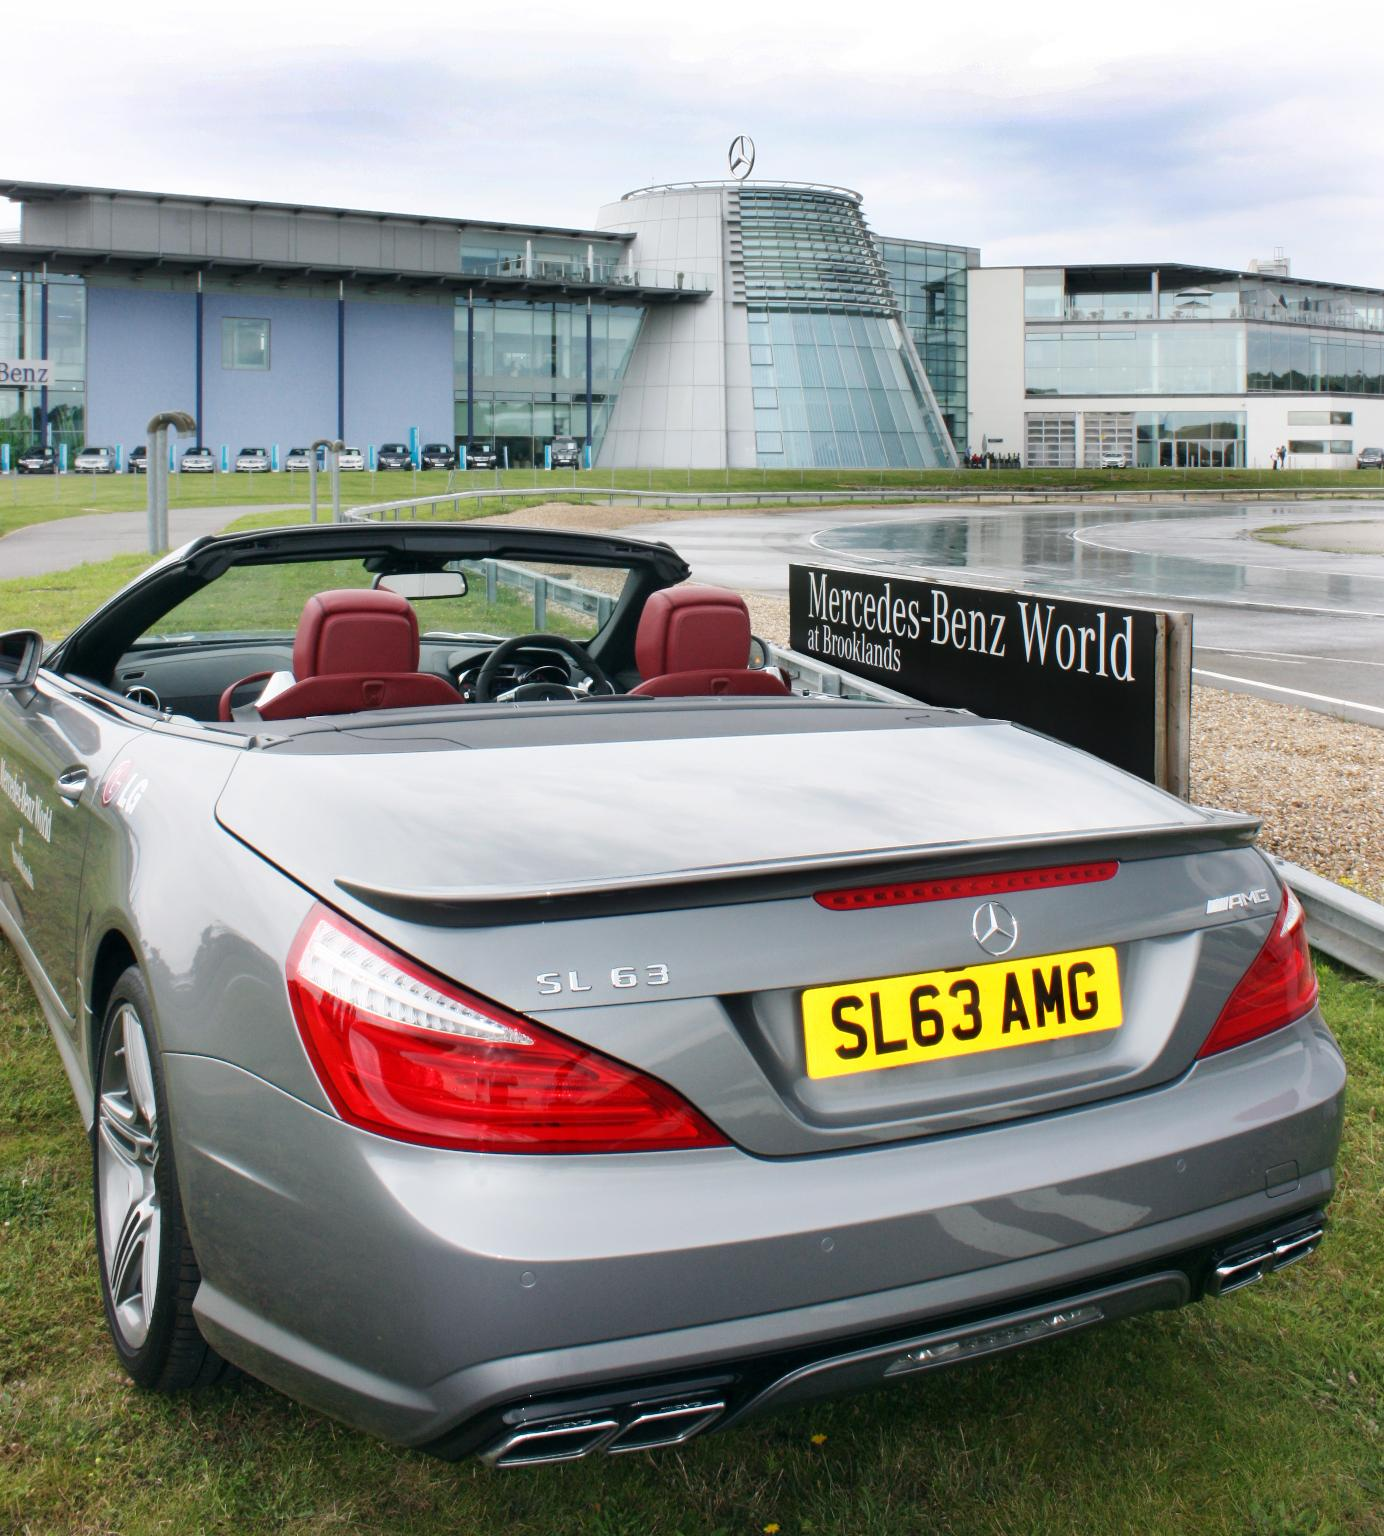 Sl 63 amg vanity plate for mercedes benz in the uk for Mercedes benz plate